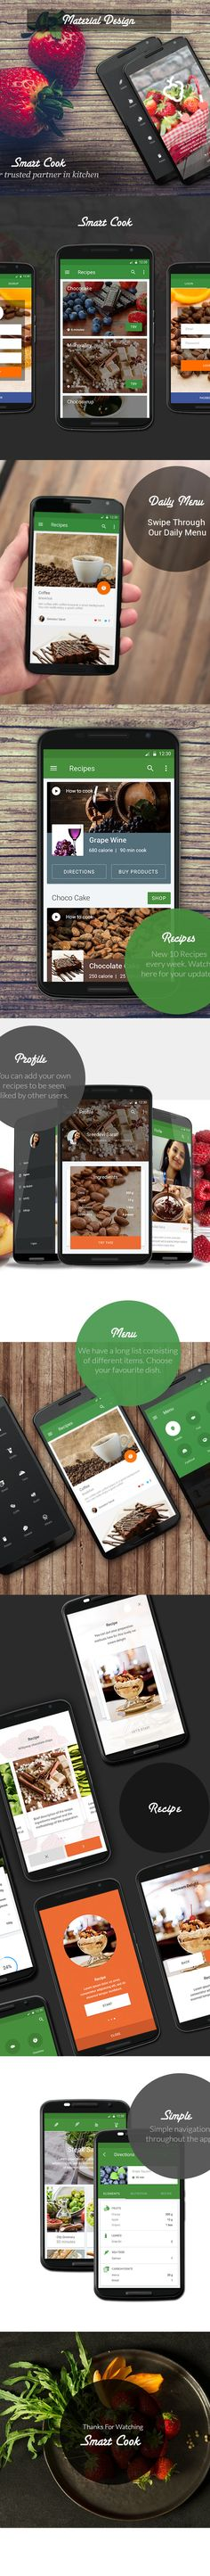 Material Design: Cooking App on Behance